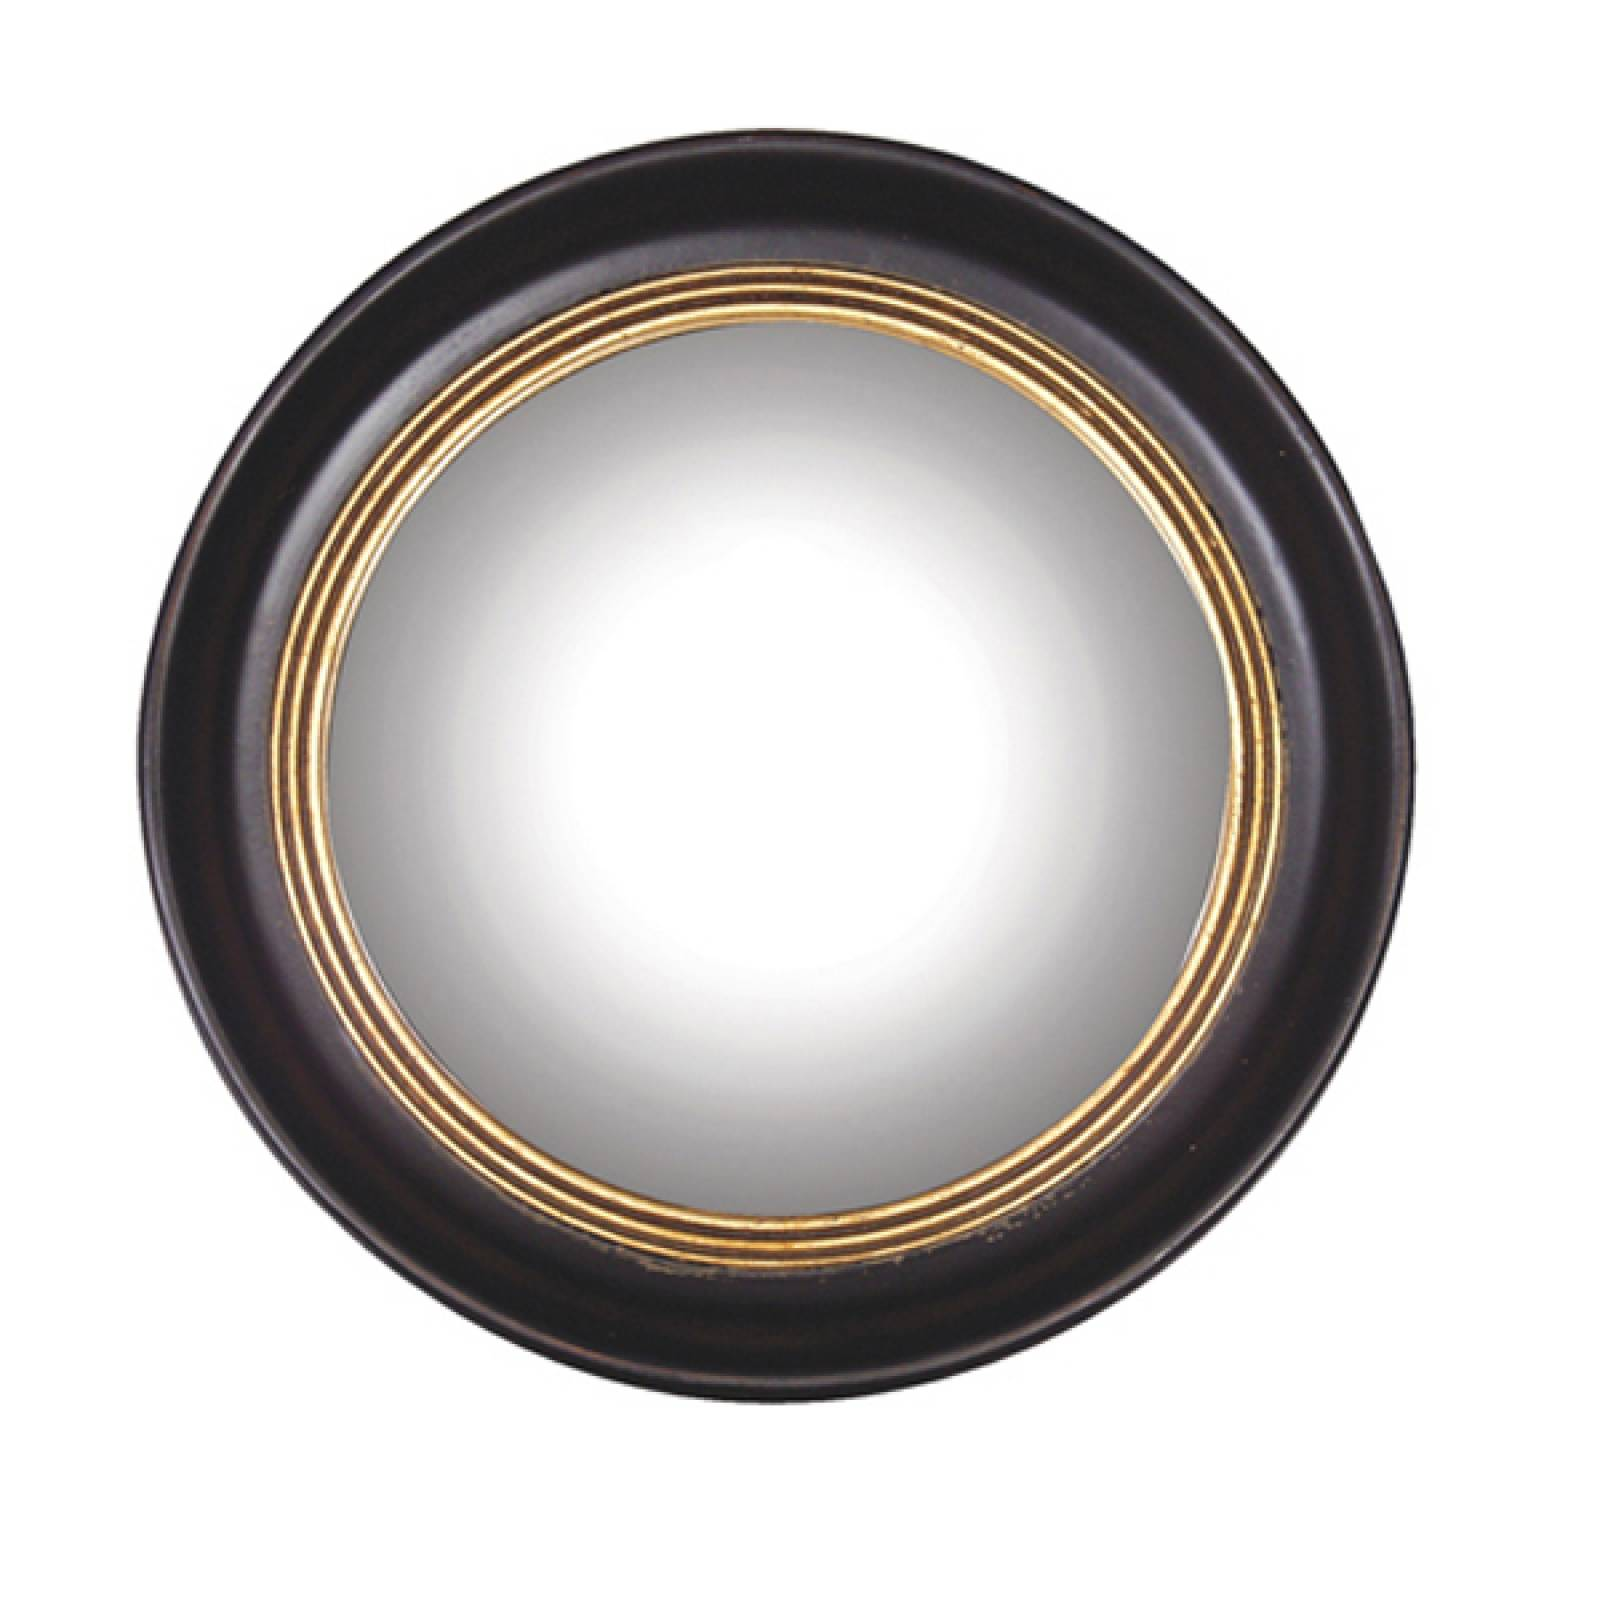 Round Convex Mirror With Black & Gold Frame D:53cm